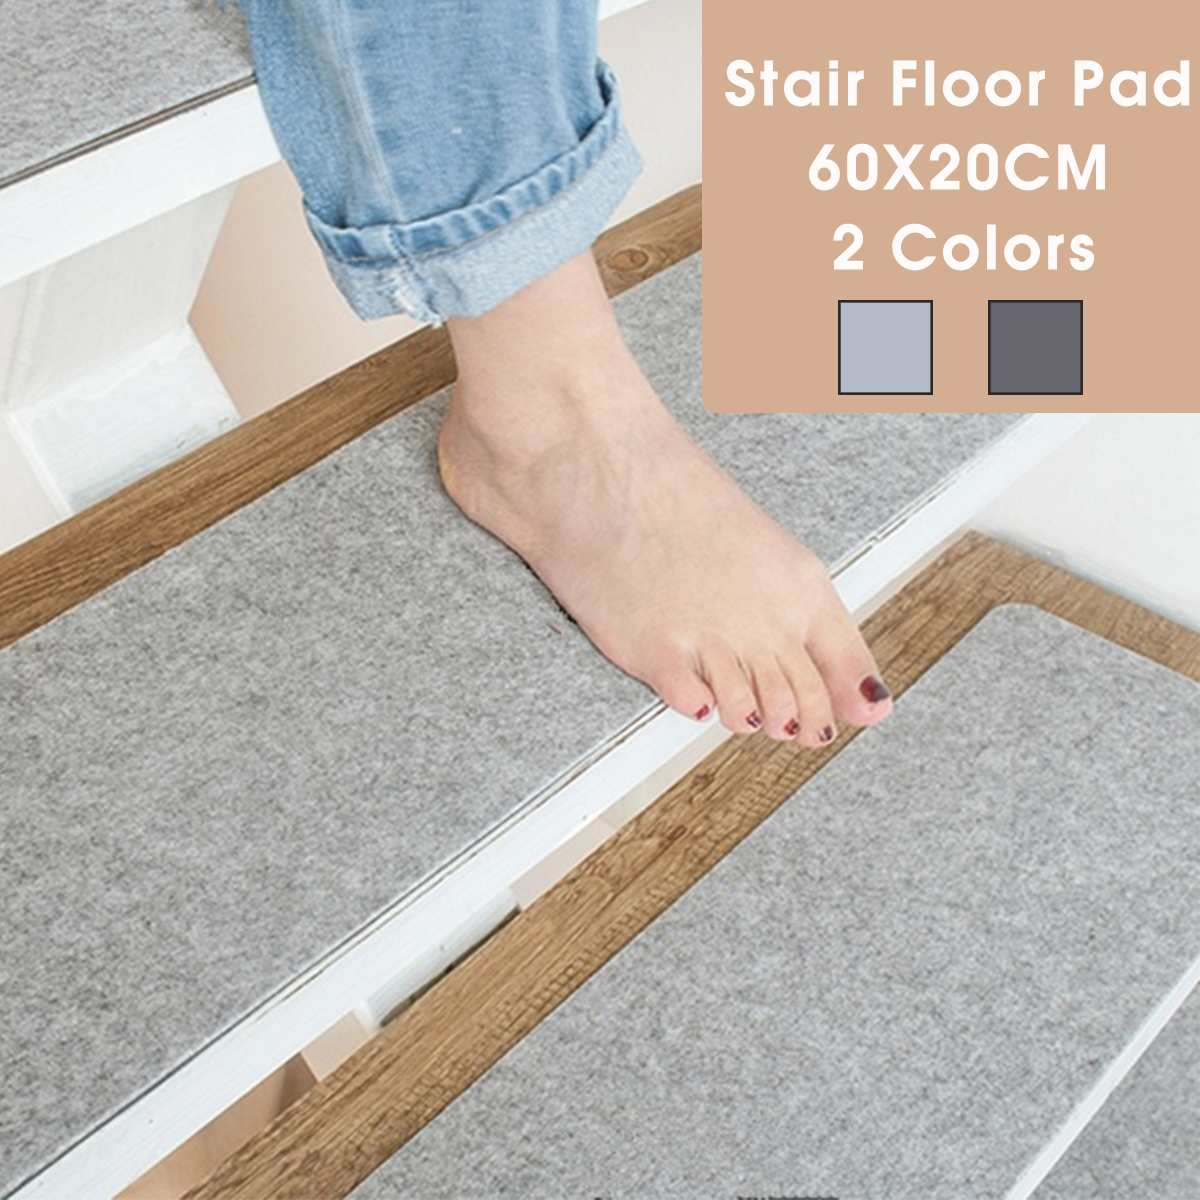 Self-adhesive Non-slip Stair Carpet Mat Reusable Washable DIY Floor Mat for Kitchen Living Room Stairway Pads Rug Soft Doormat